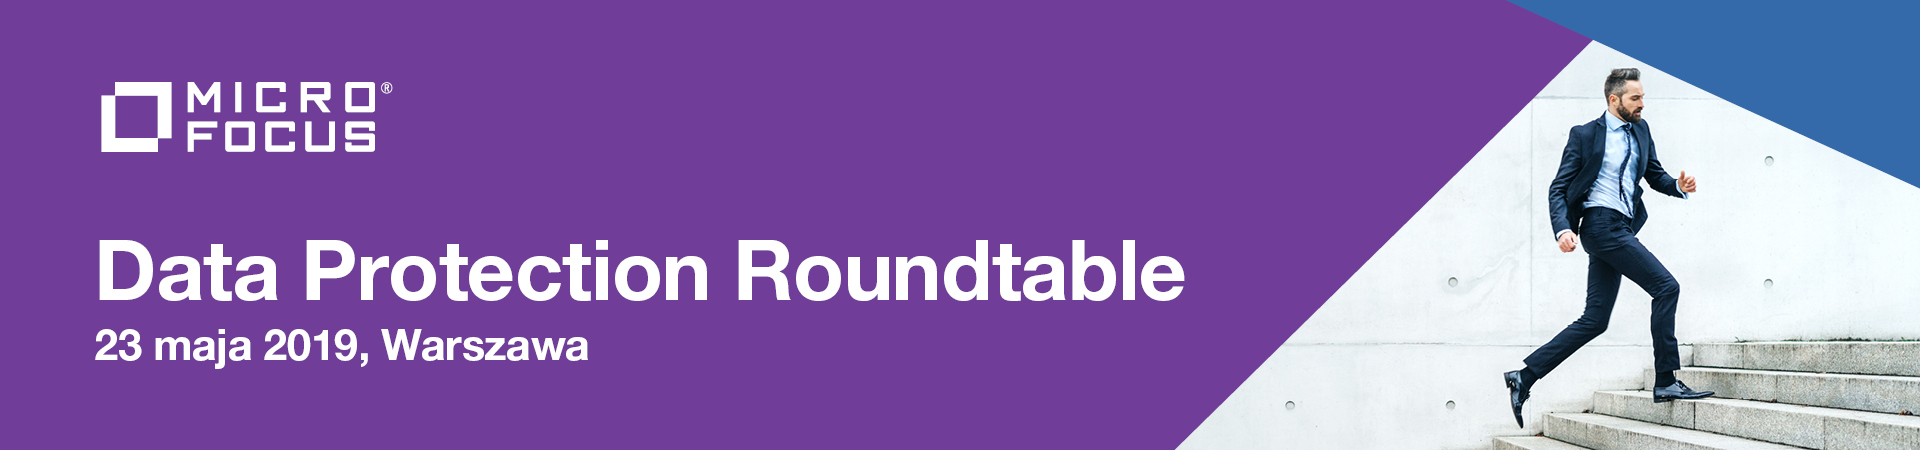 Data Protection Roundtable